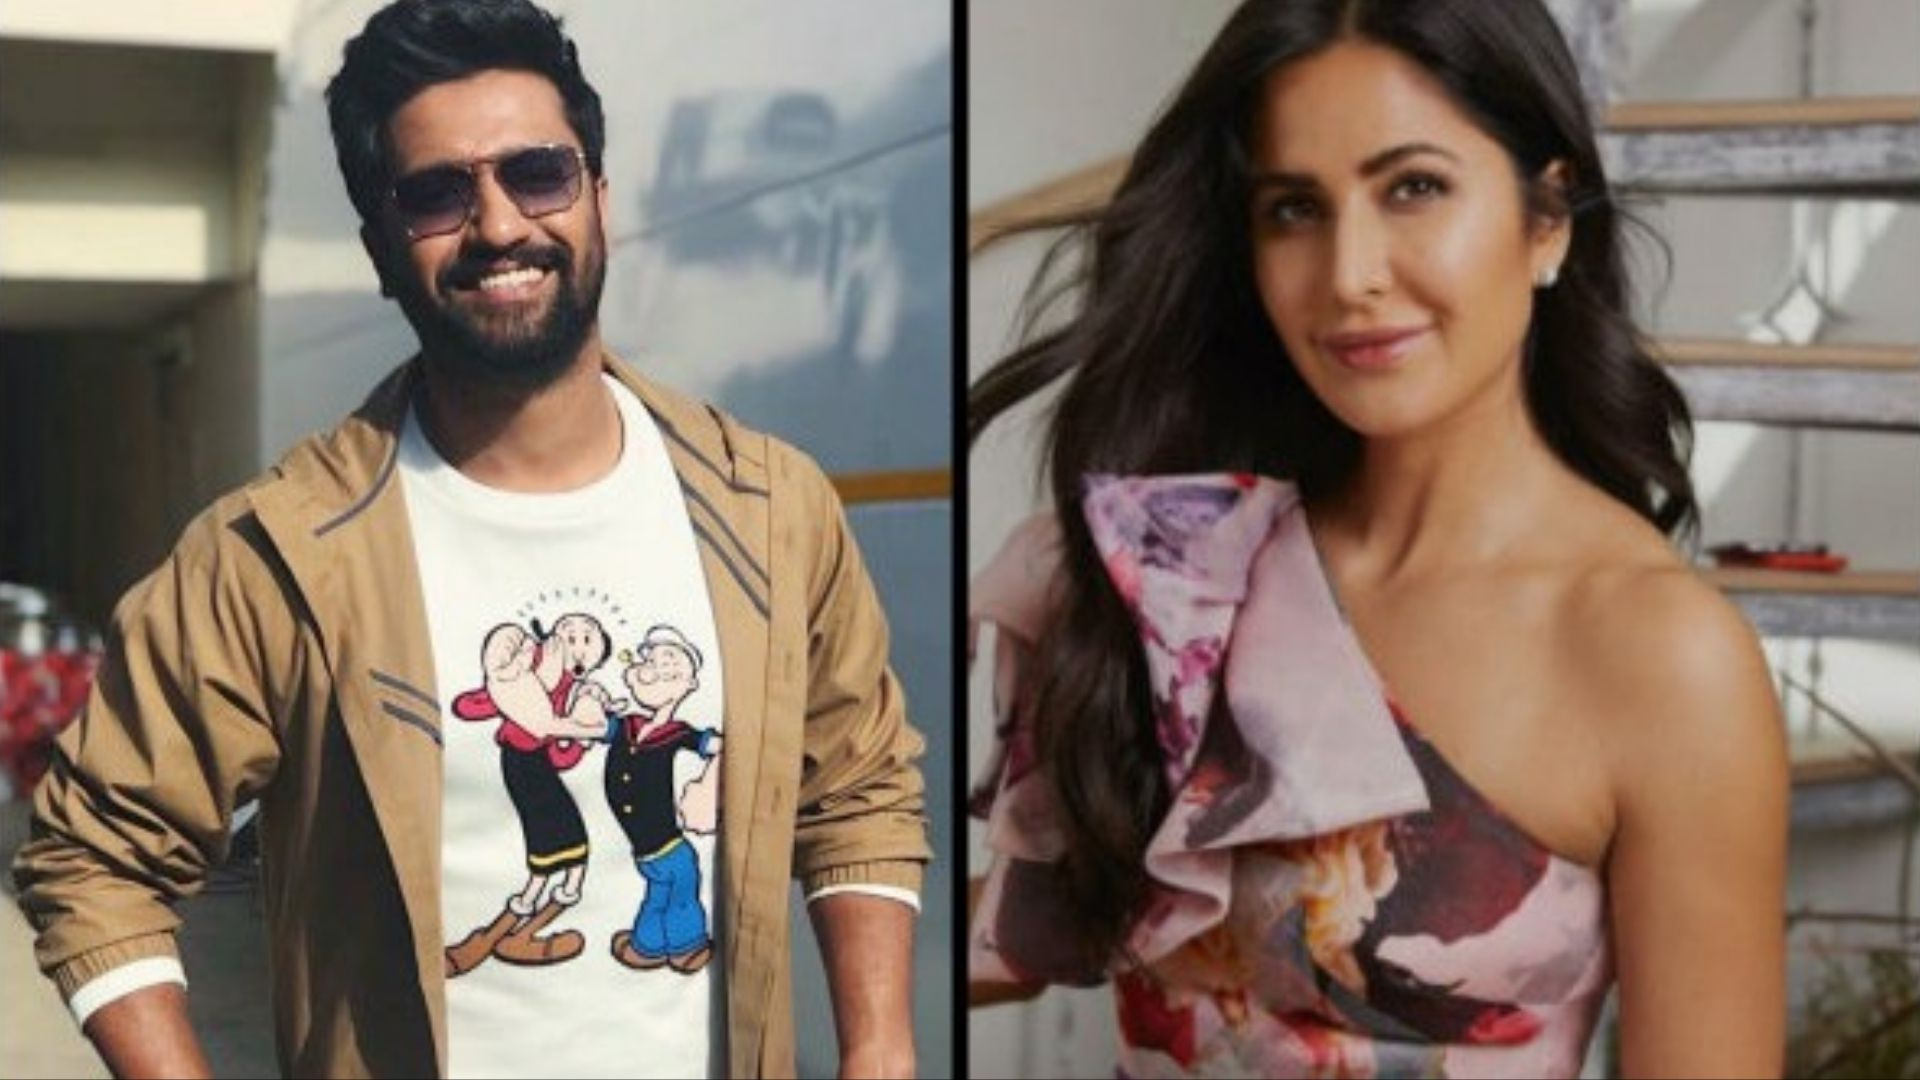 Katrina Kaif Rumored Beau Vicky Kaushal Just Confirmed Their Engagement? – Know The Truth Here